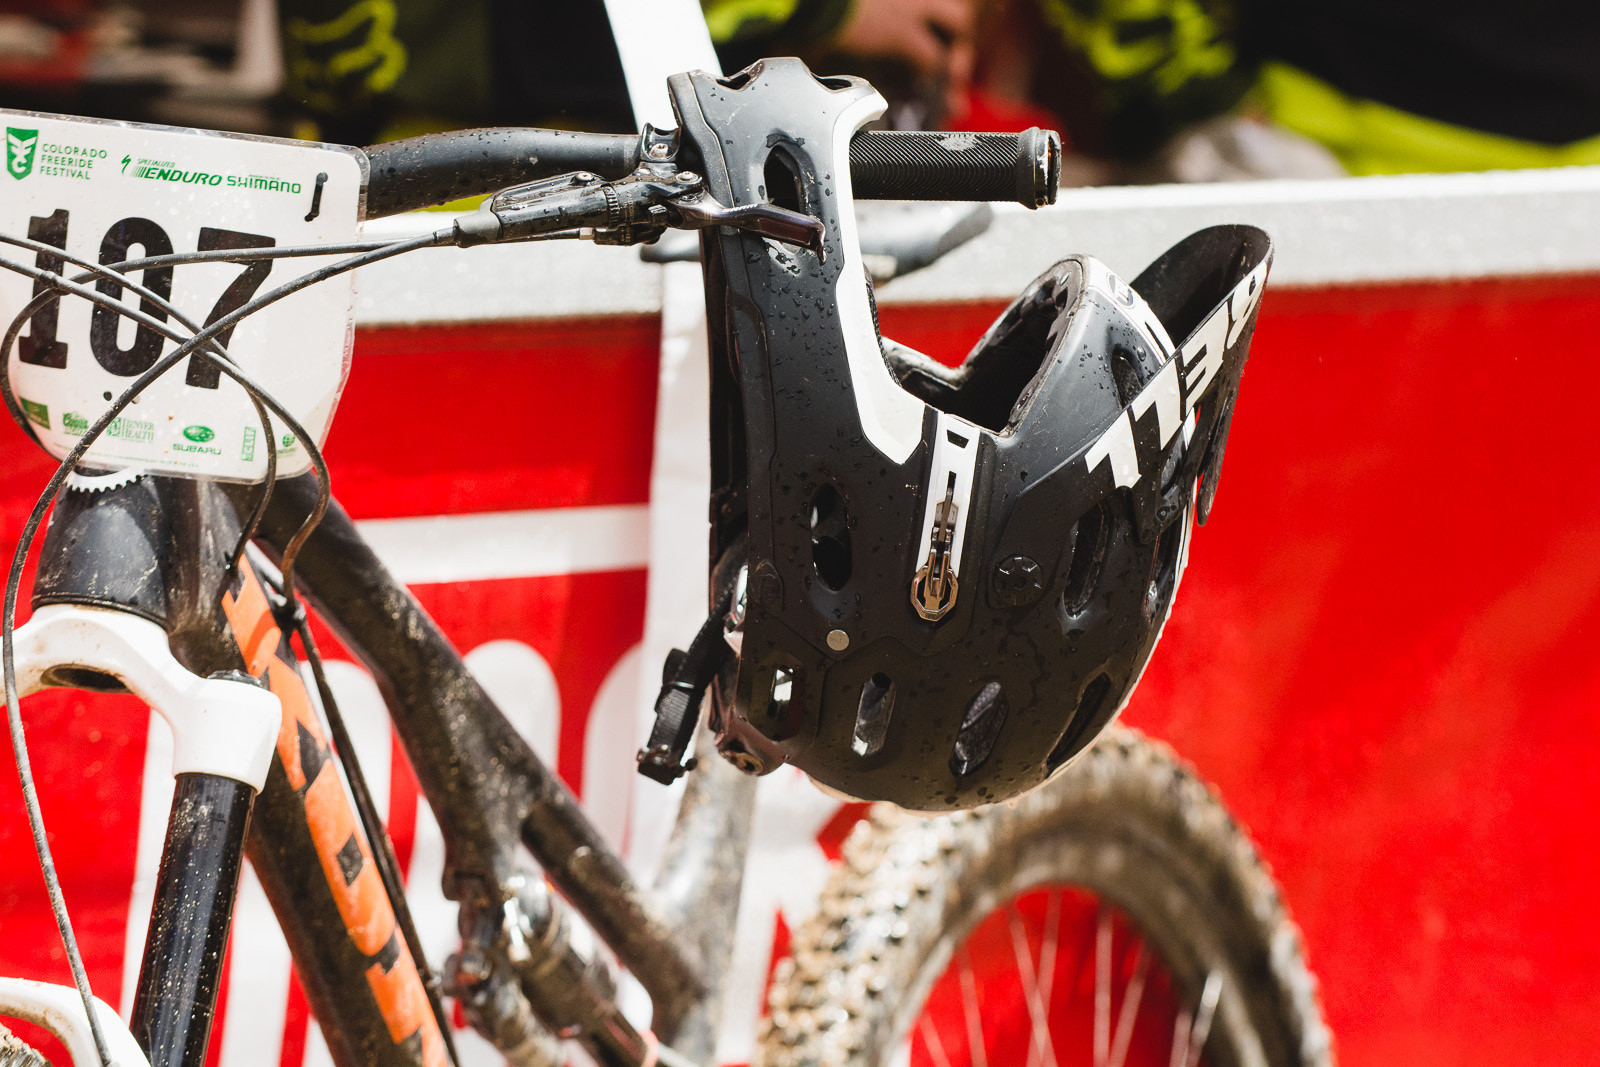 Matt Slaven's Prototype Bell Super 2R Fullface Helmet - PIT BITS - 2014 Enduro World Series Colorado Freeride Festival - Mountain Biking Pictures - Vital MTB